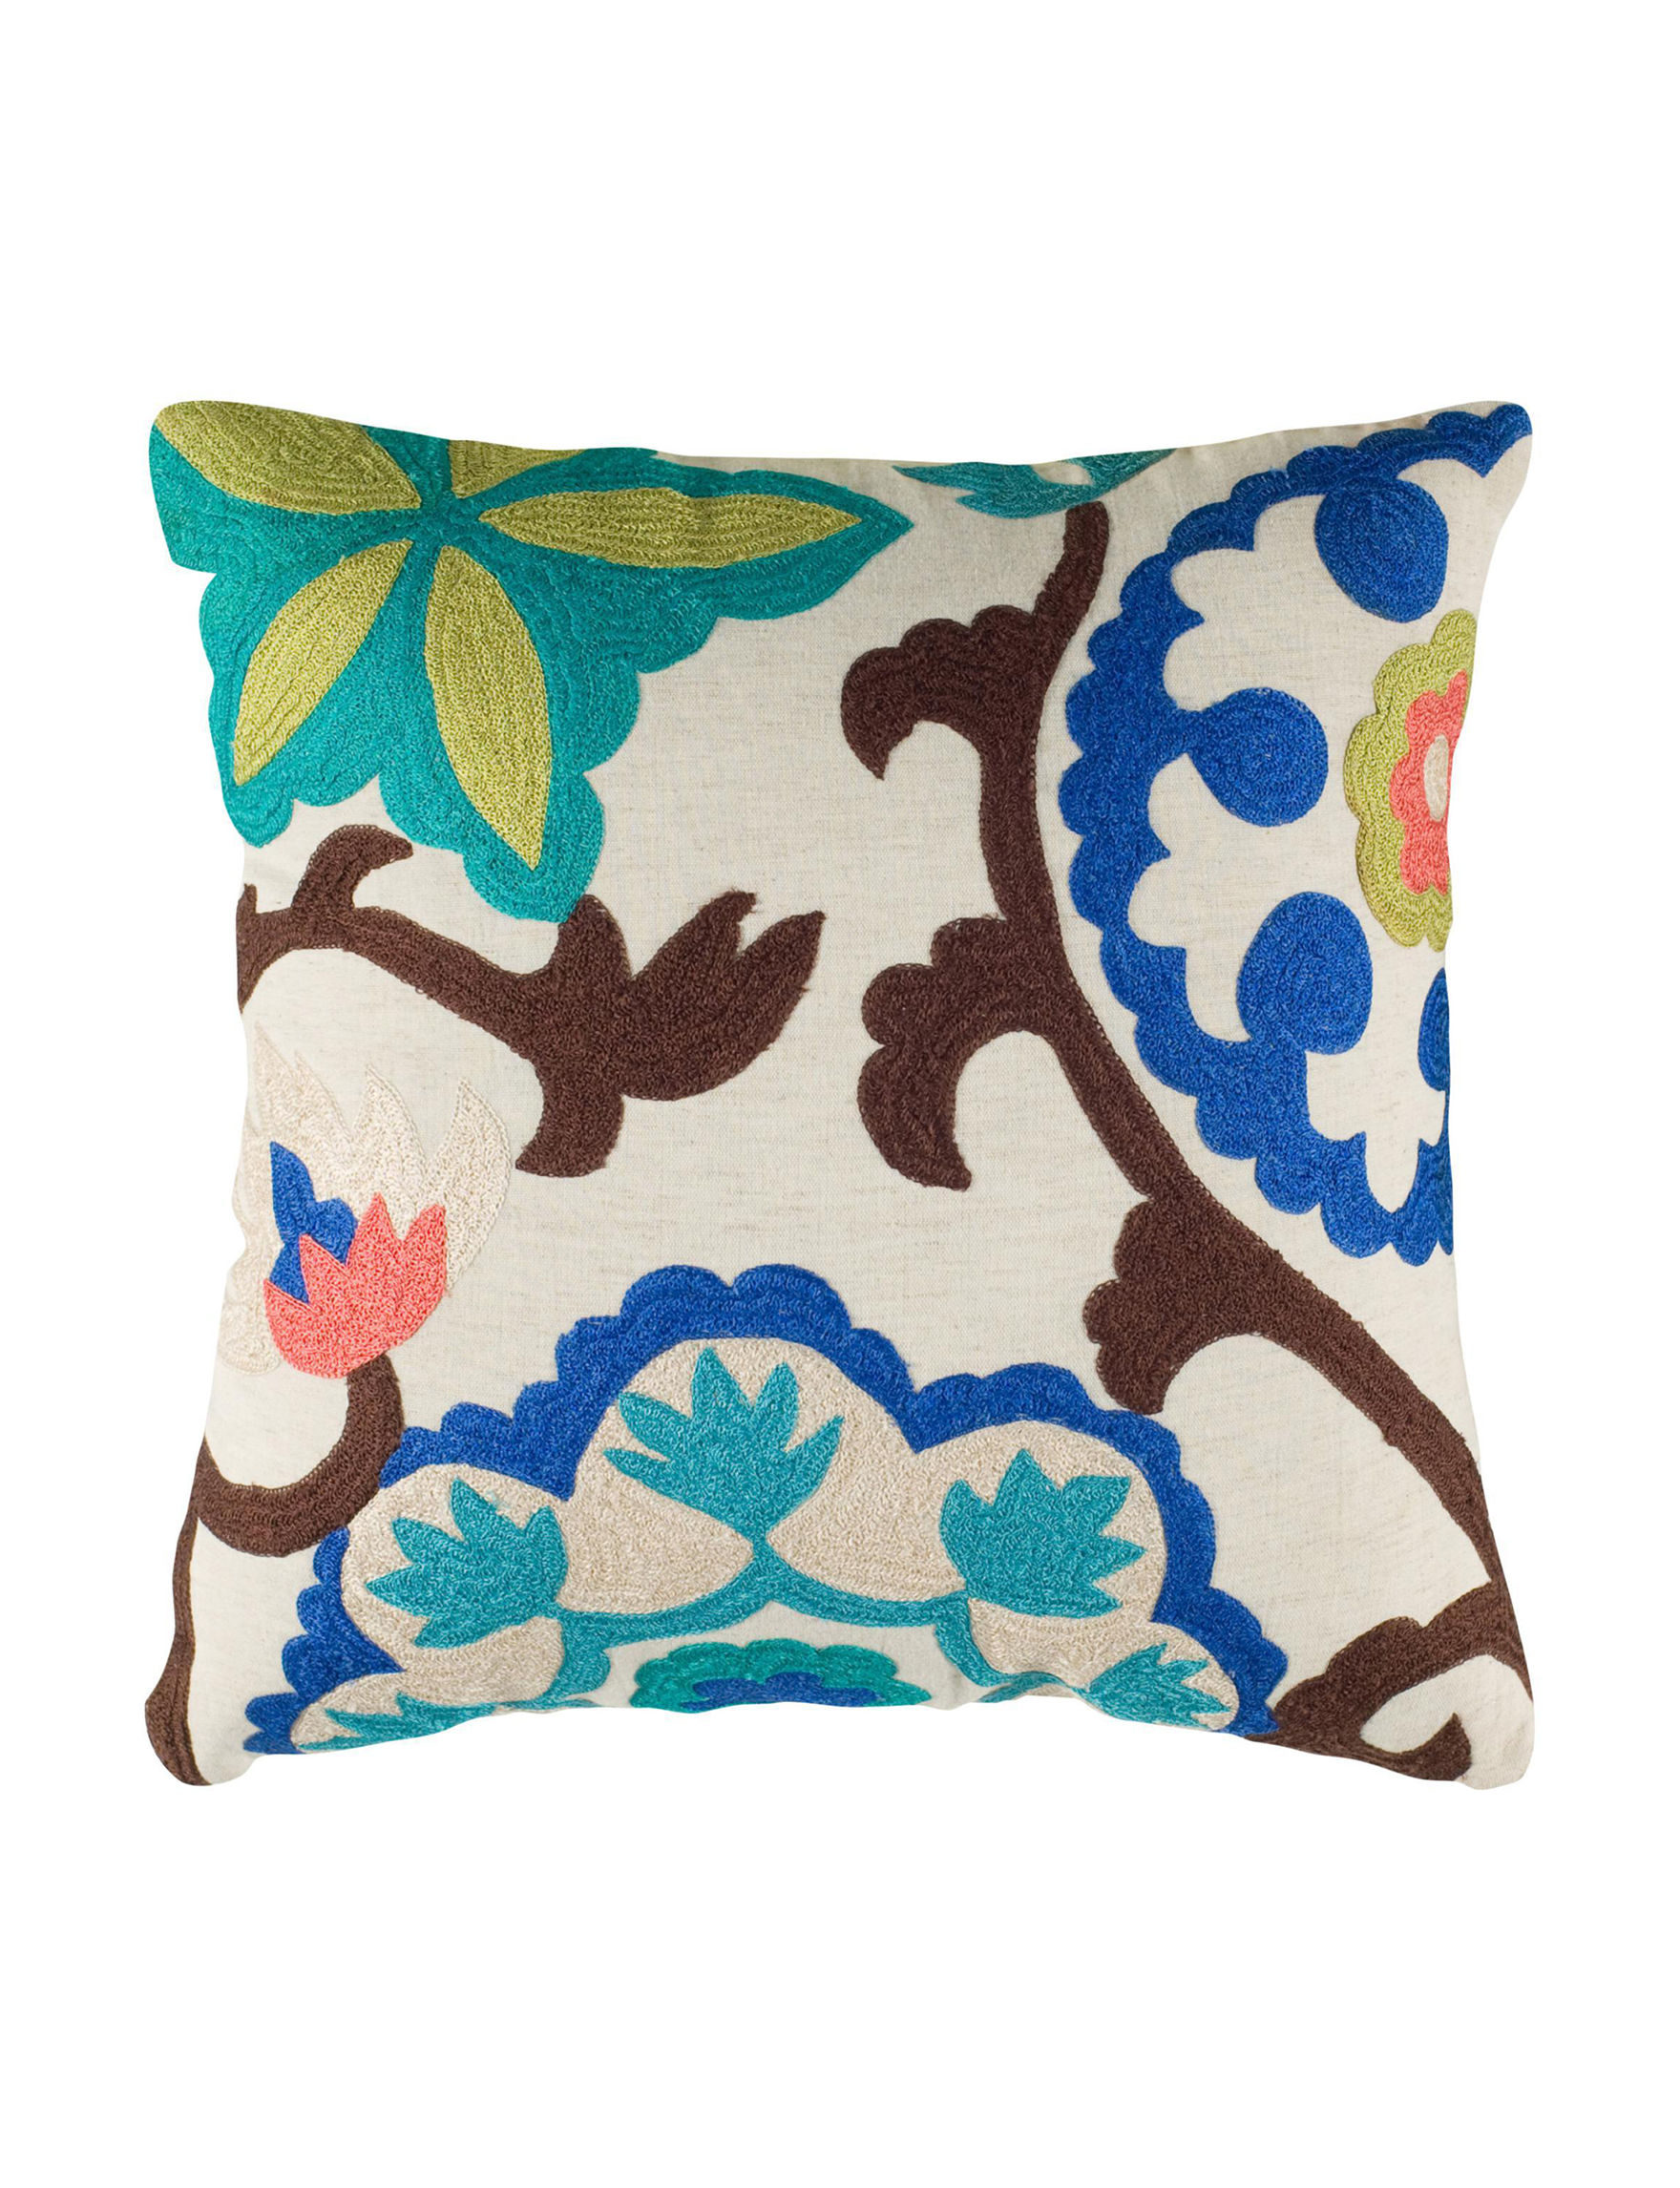 Rizzy Home Floral / Multi Decorative Pillows